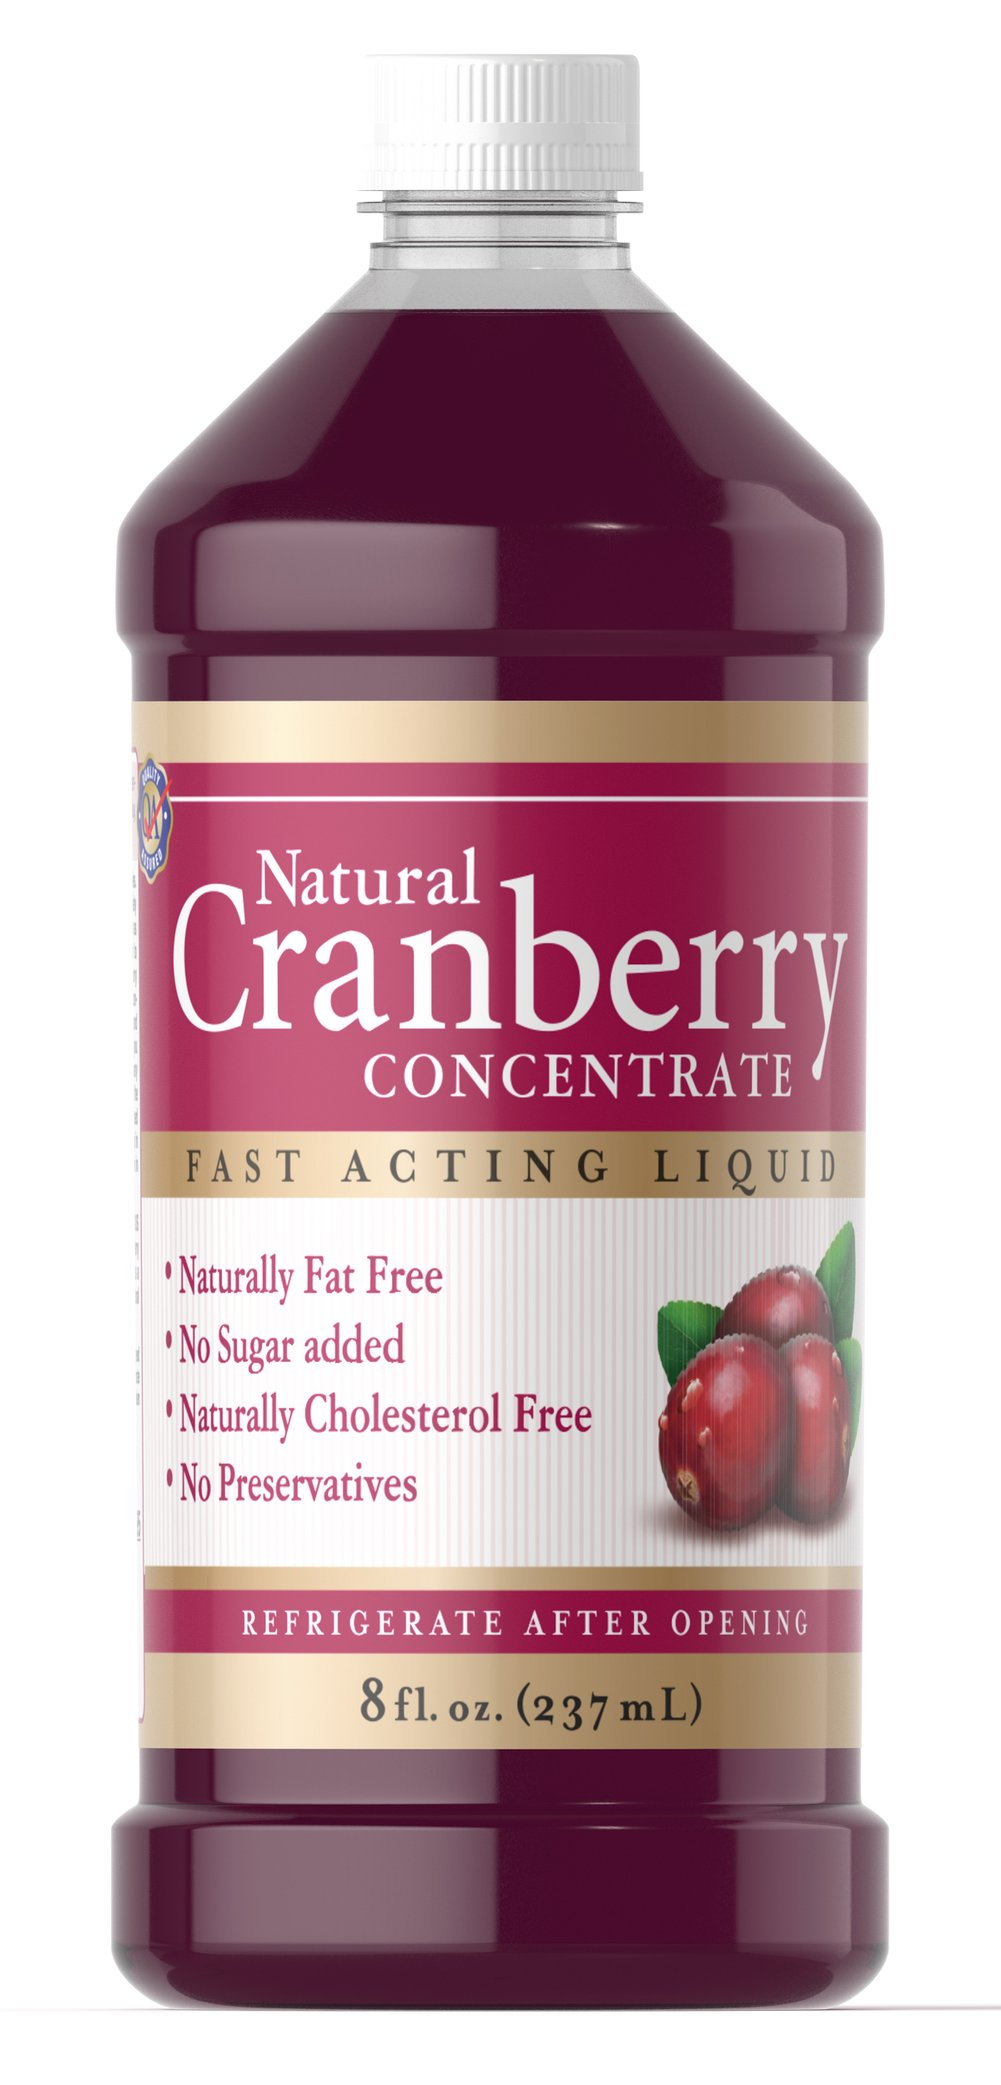 Natural Cranberry Concentrate <p>Our Natural Cranberry Concentrate Liquid is a liquid formula that is naturally free from fat, added sugar, cholesterol and preservatives.  Cranberry Concentrate Liquid gives you 100% natural cranberry concentrate without unnecessary additives or a cocktail taste.  In addition, there's the extra nutritional benefit of proanthocyanidins (condensed tannins) which have been identified in the cranberry fruit.</p>  8 oz Liquid  $16.99